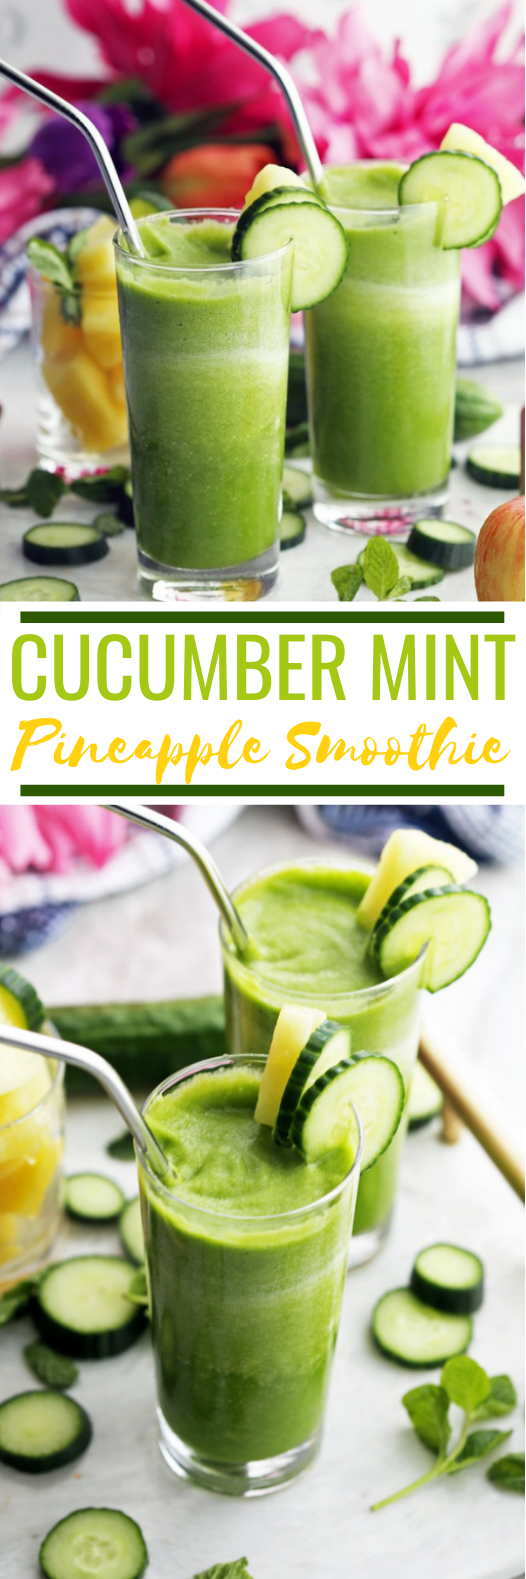 Cucumber Mint Pineapple Smoothie #healthy #drink #detox #smoothies #breakfast